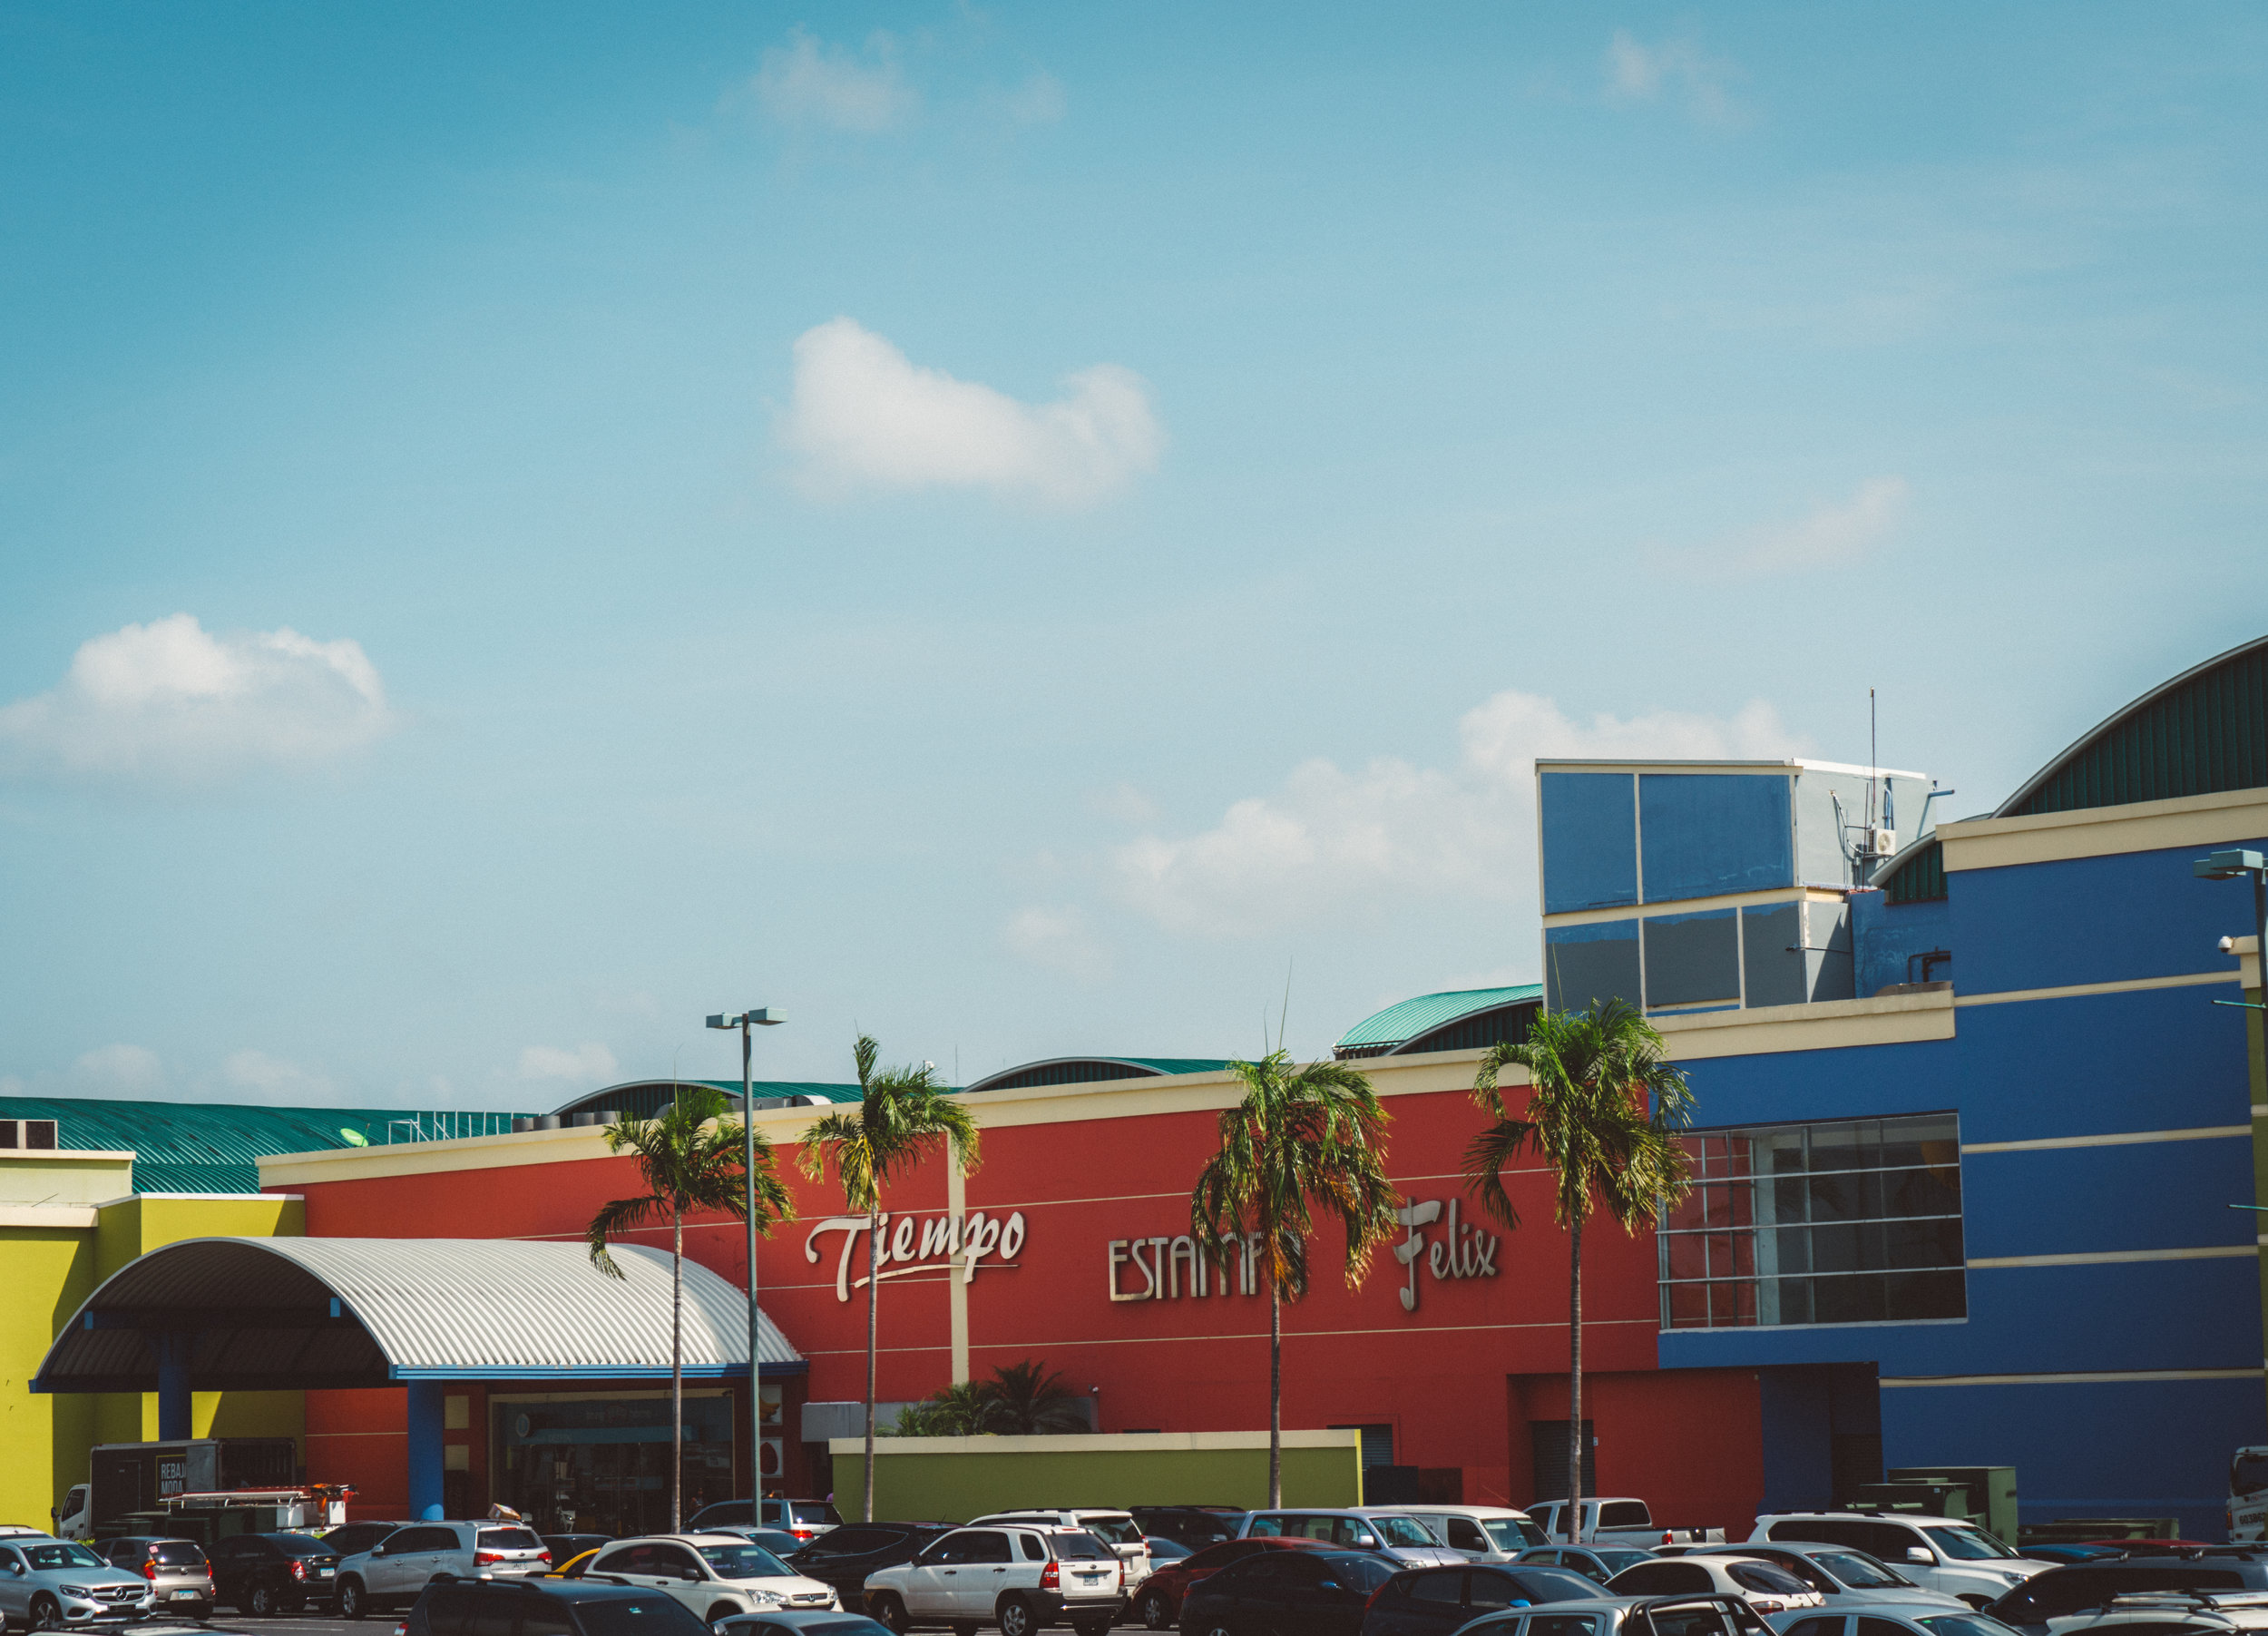 This is Albrook Mall, the biggest mall in the Americas, and largest mall outside of Asia. I saw more malls in Panama than I think I've ever seen; they love their malls. We didn't go in to this mall but drove by on our bus tour. The next bunch of photos were taken along the bus tour.